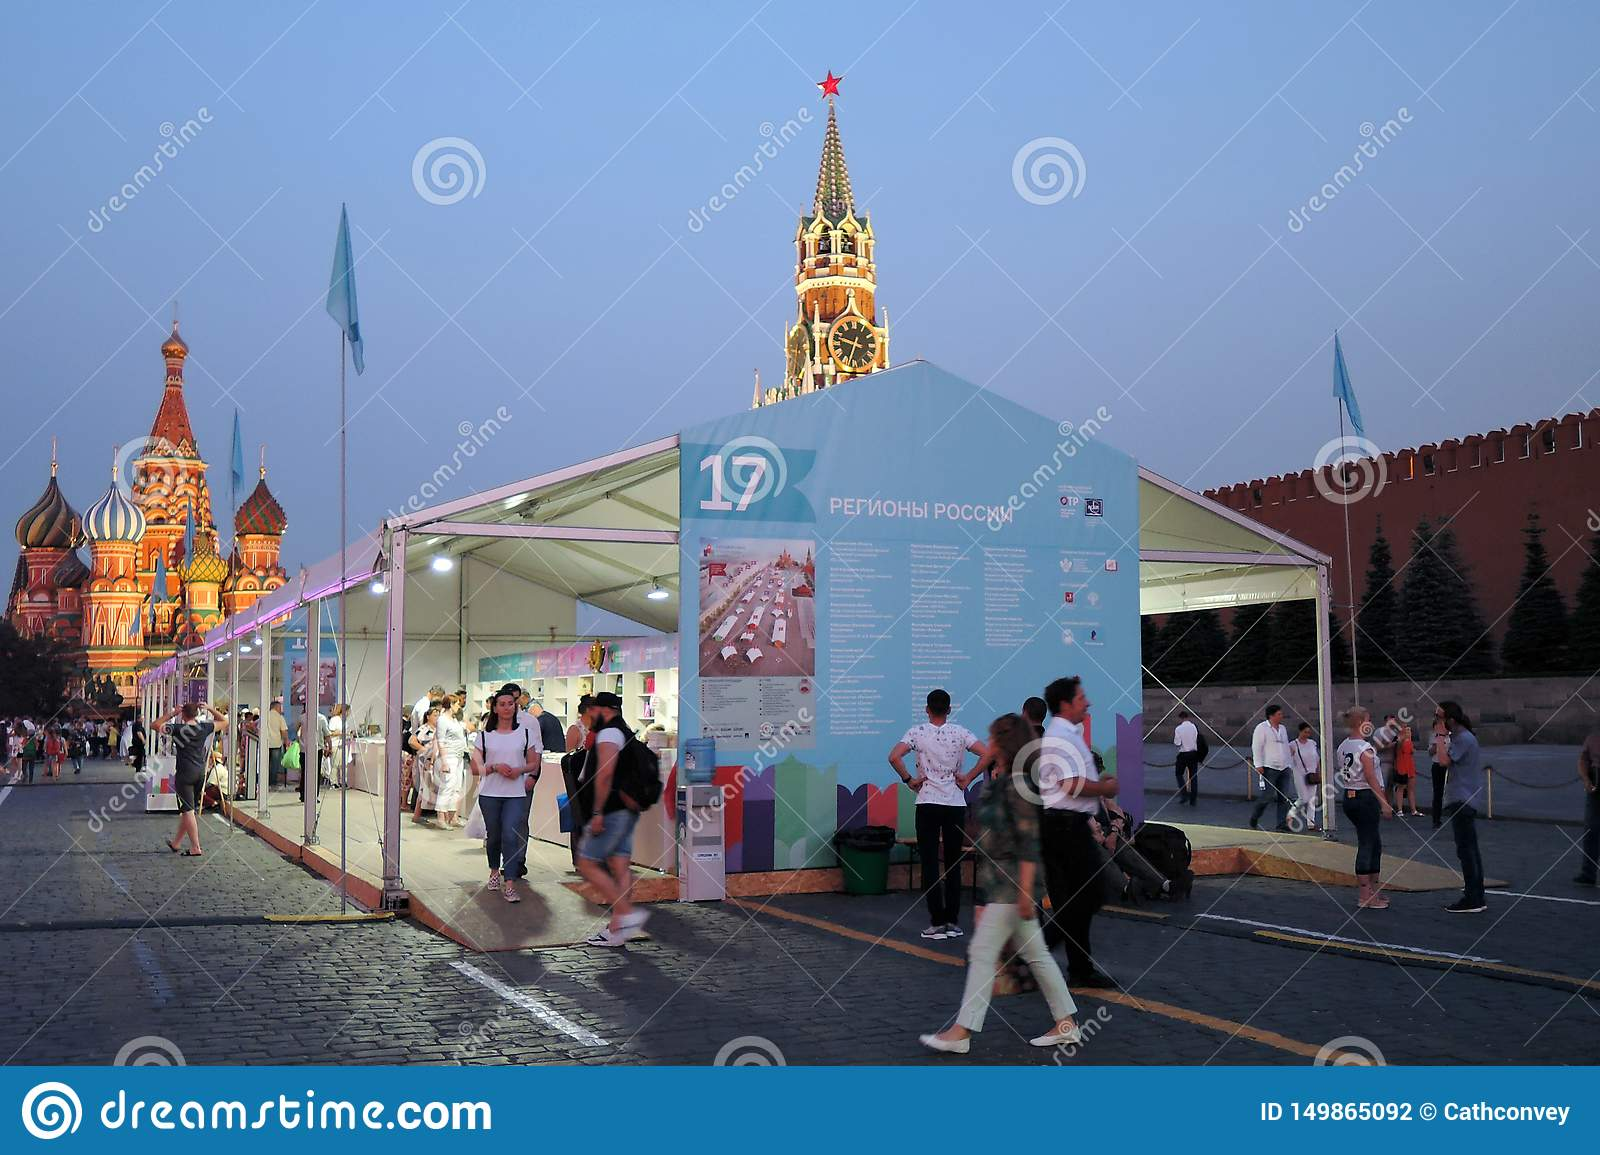 People visit The Red Square Book Fair in Moscow.